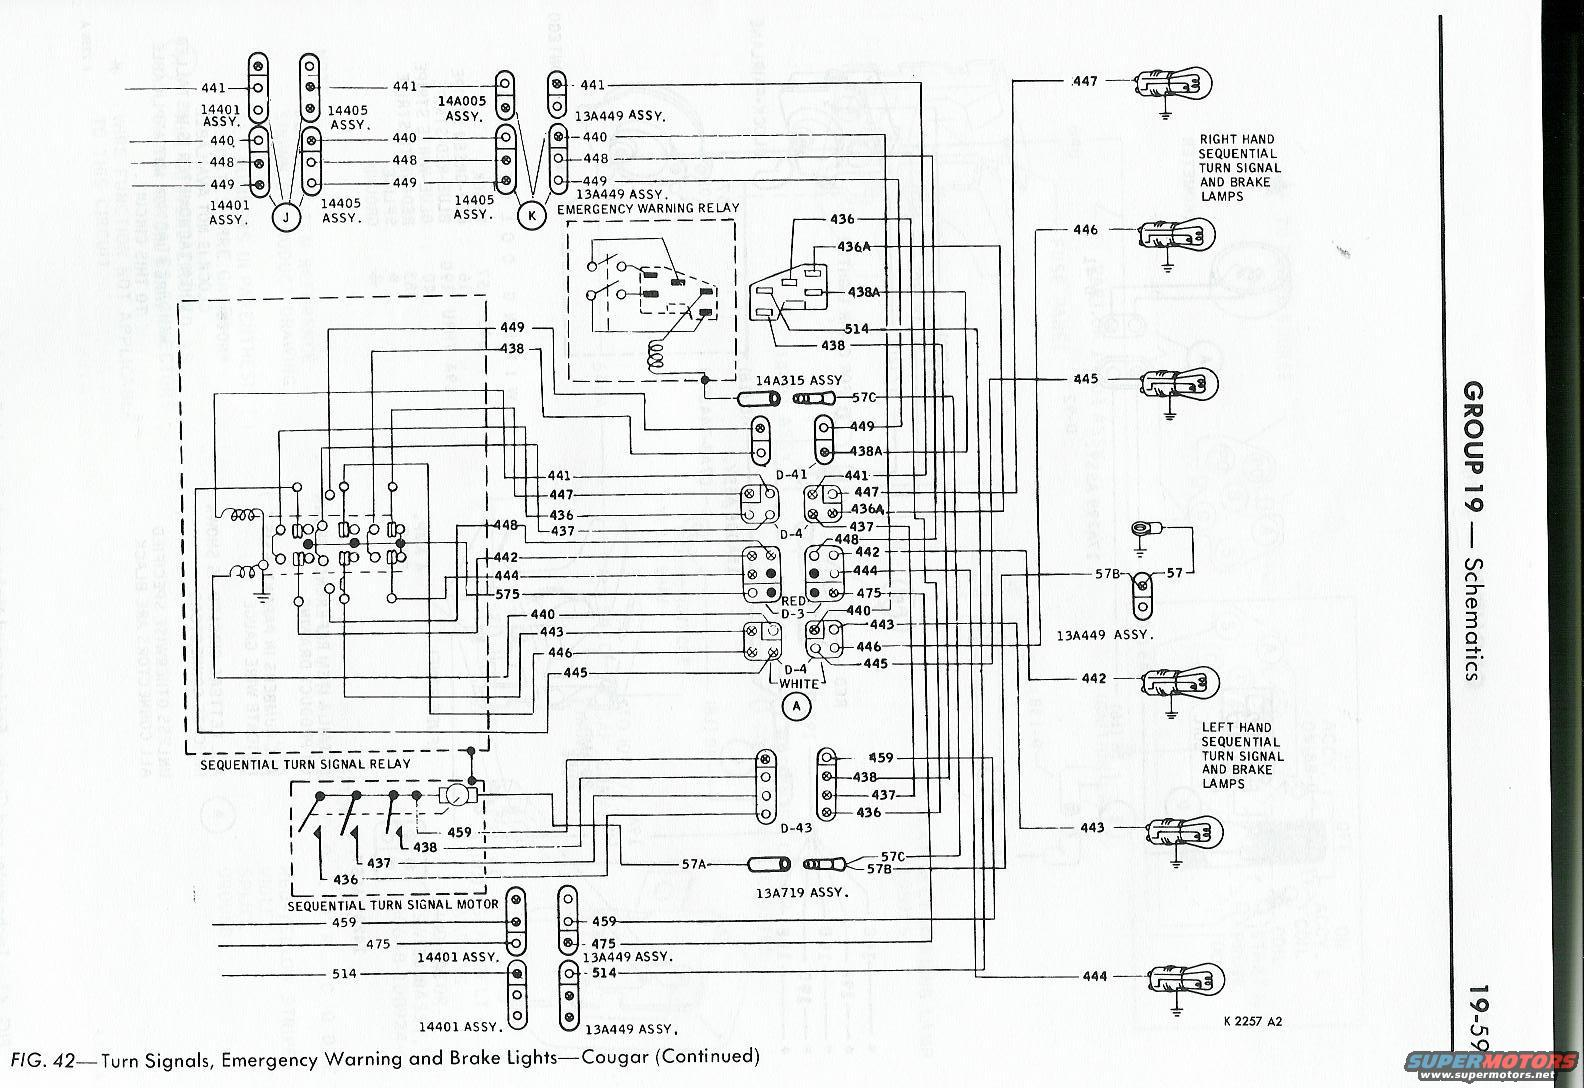 WRG-4272] Ford Cougar Alternator Wiring Diagram on